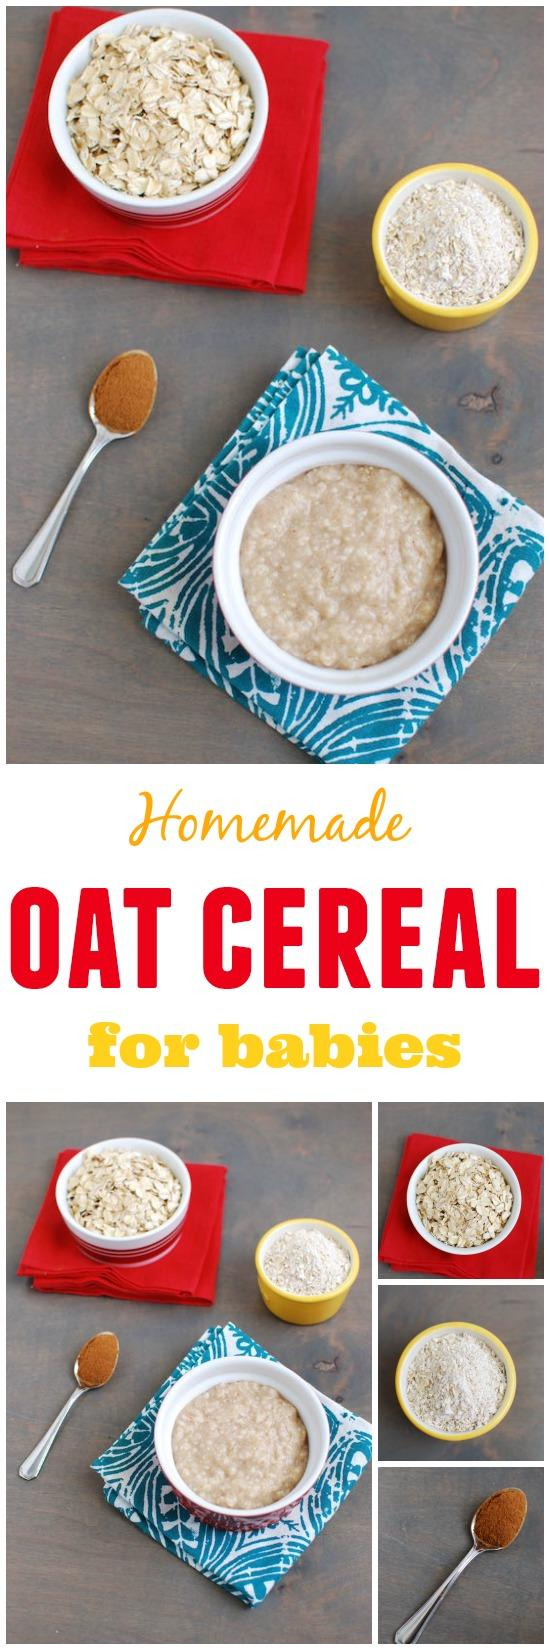 Learn how to make baby oatmeal! You're just 3 ingredients away from homemade baby oatmeal cereal.